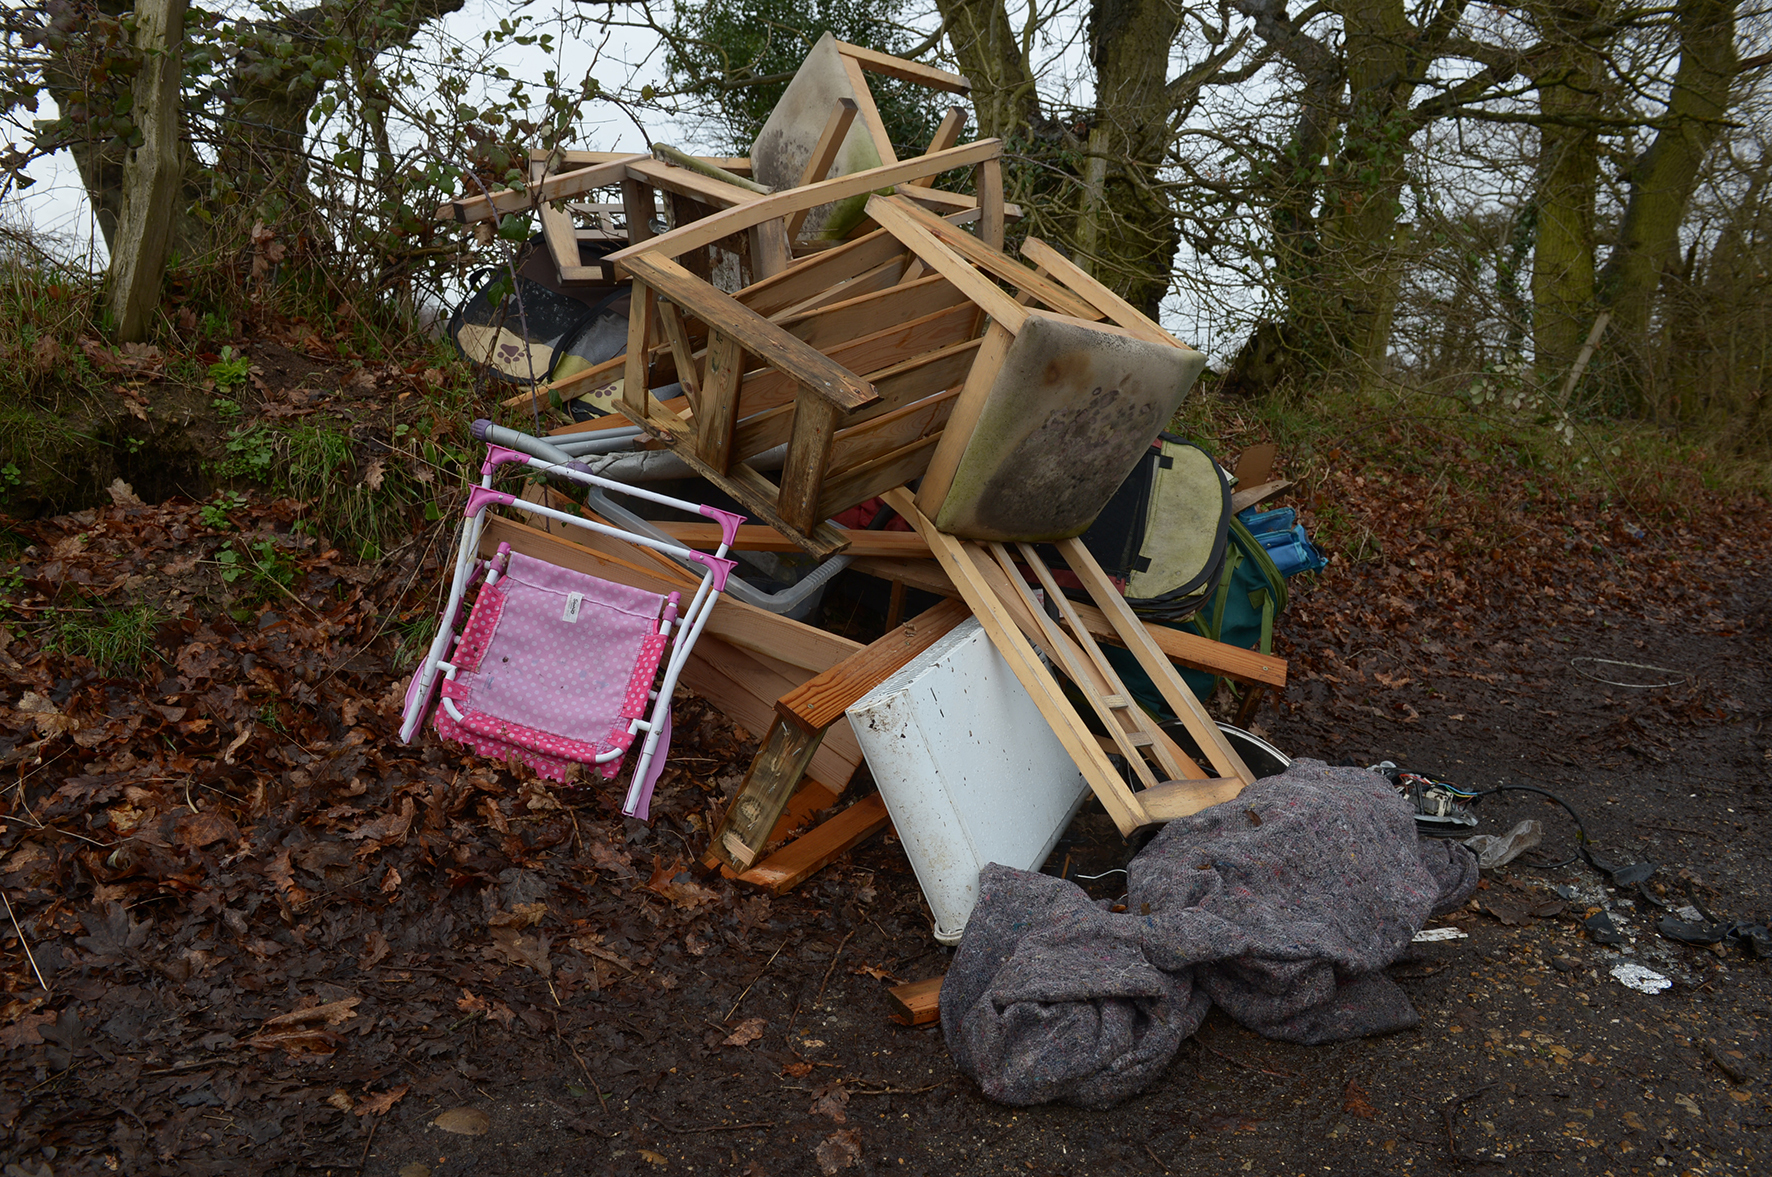 Rural survey - police want to know about issues like flytipping which affect rural residents